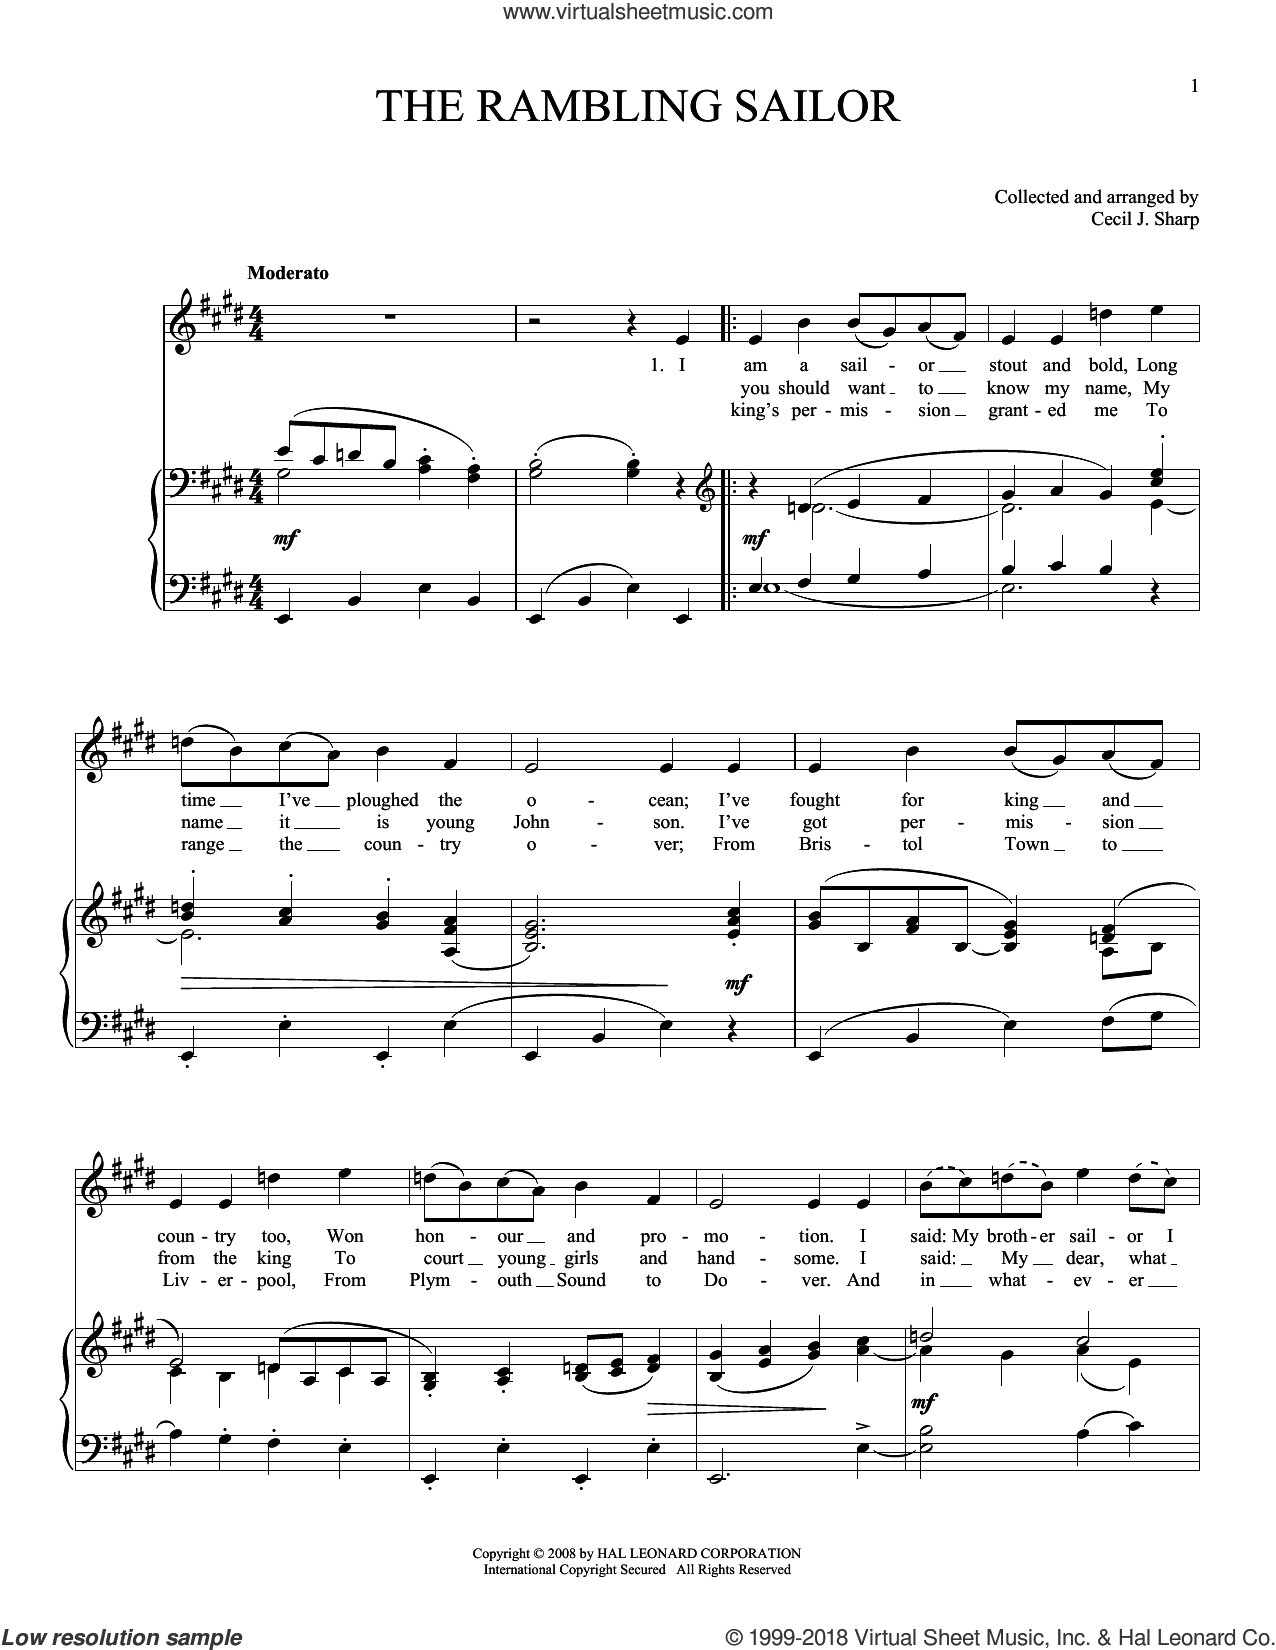 The Rambling Sailor sheet music for voice and piano